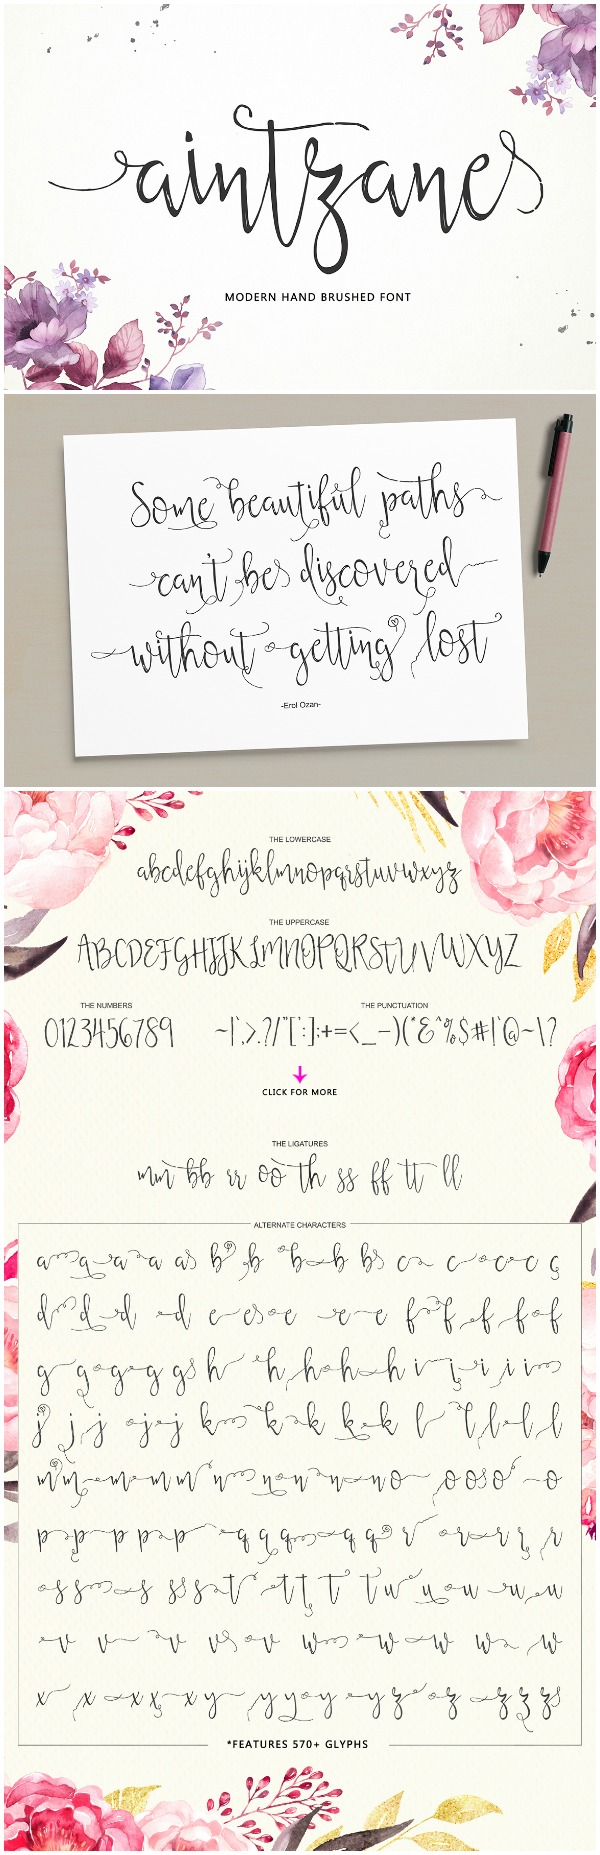 Favorite Fonts: Aintzane Font- Look at all the beautiful swashes this font comes with!